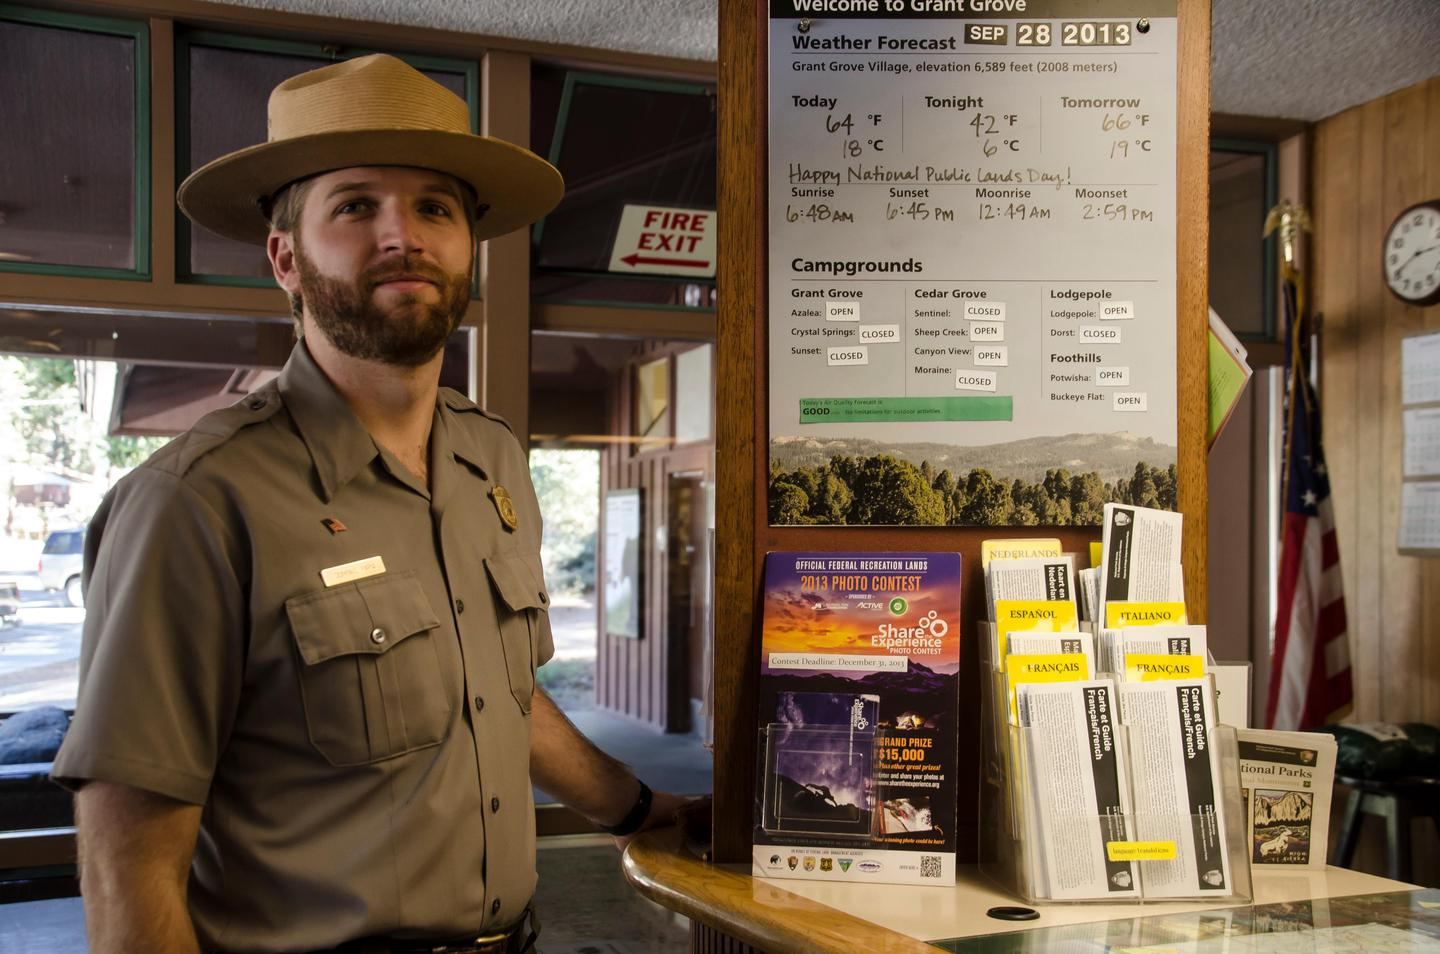 Kings Canyon Visitor CenterHere, you can talk to a ranger and get trip planning information, or obtain a wilderness permit.